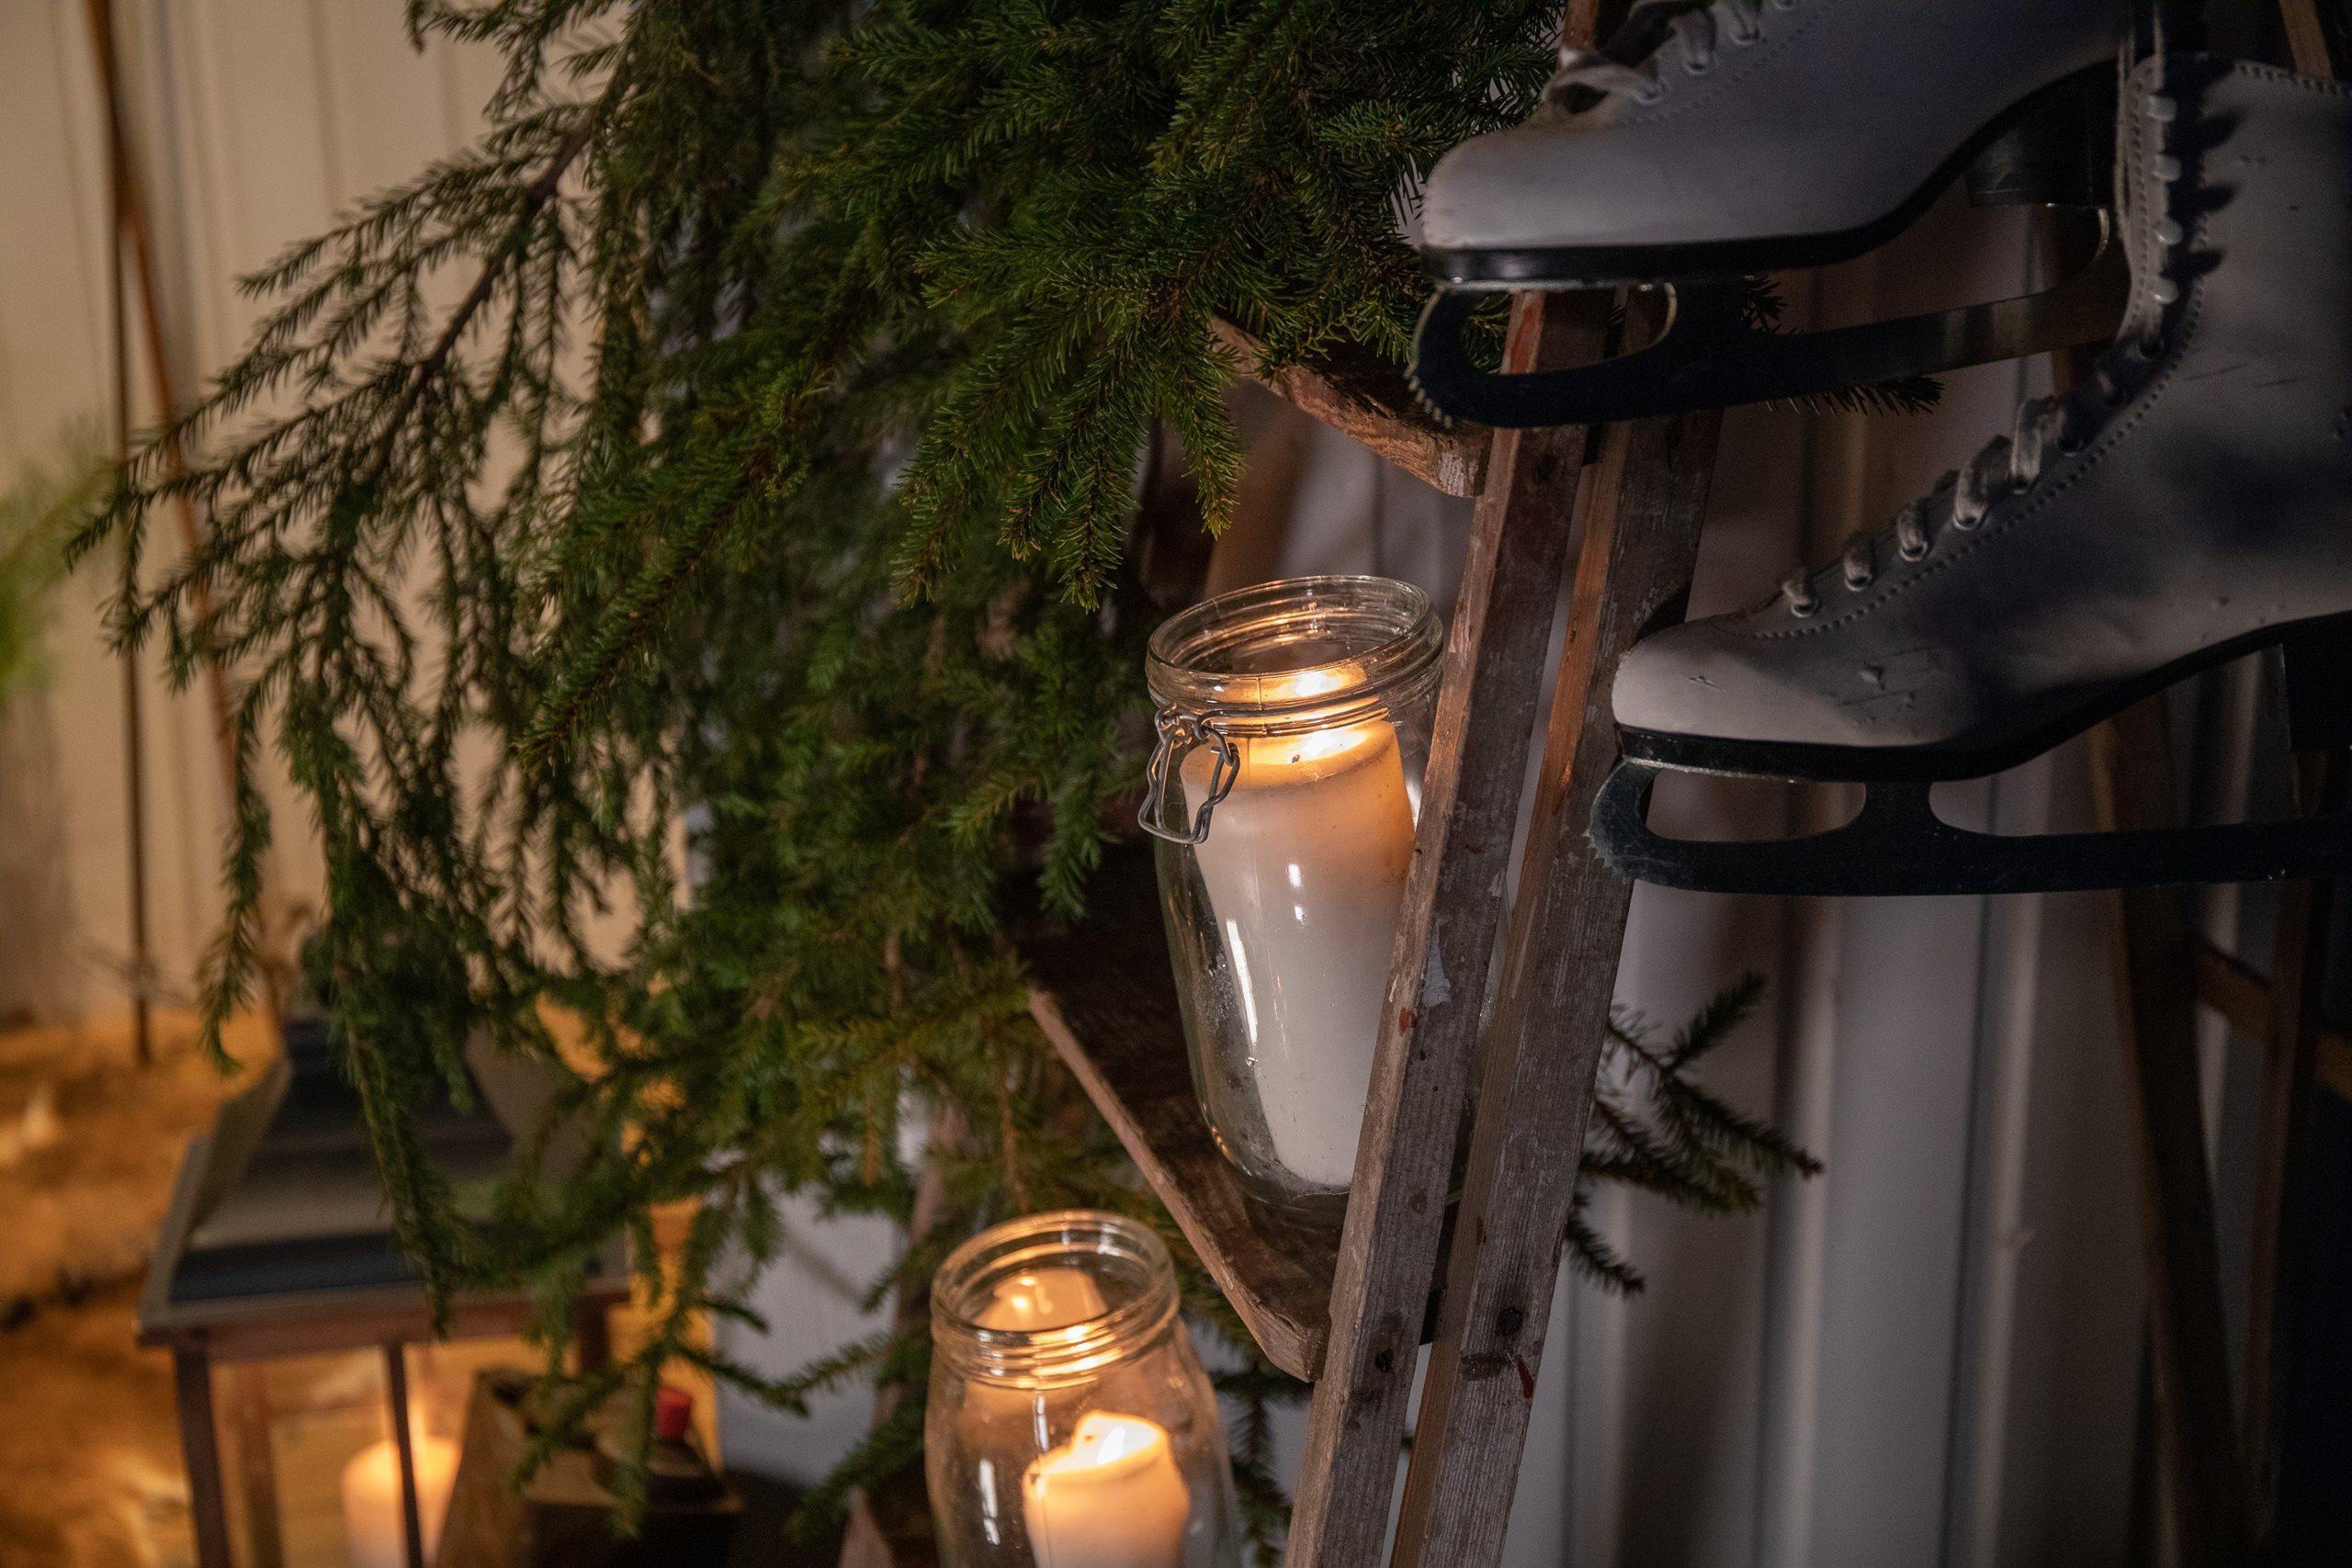 Swedoor-julestyling-glasslykter